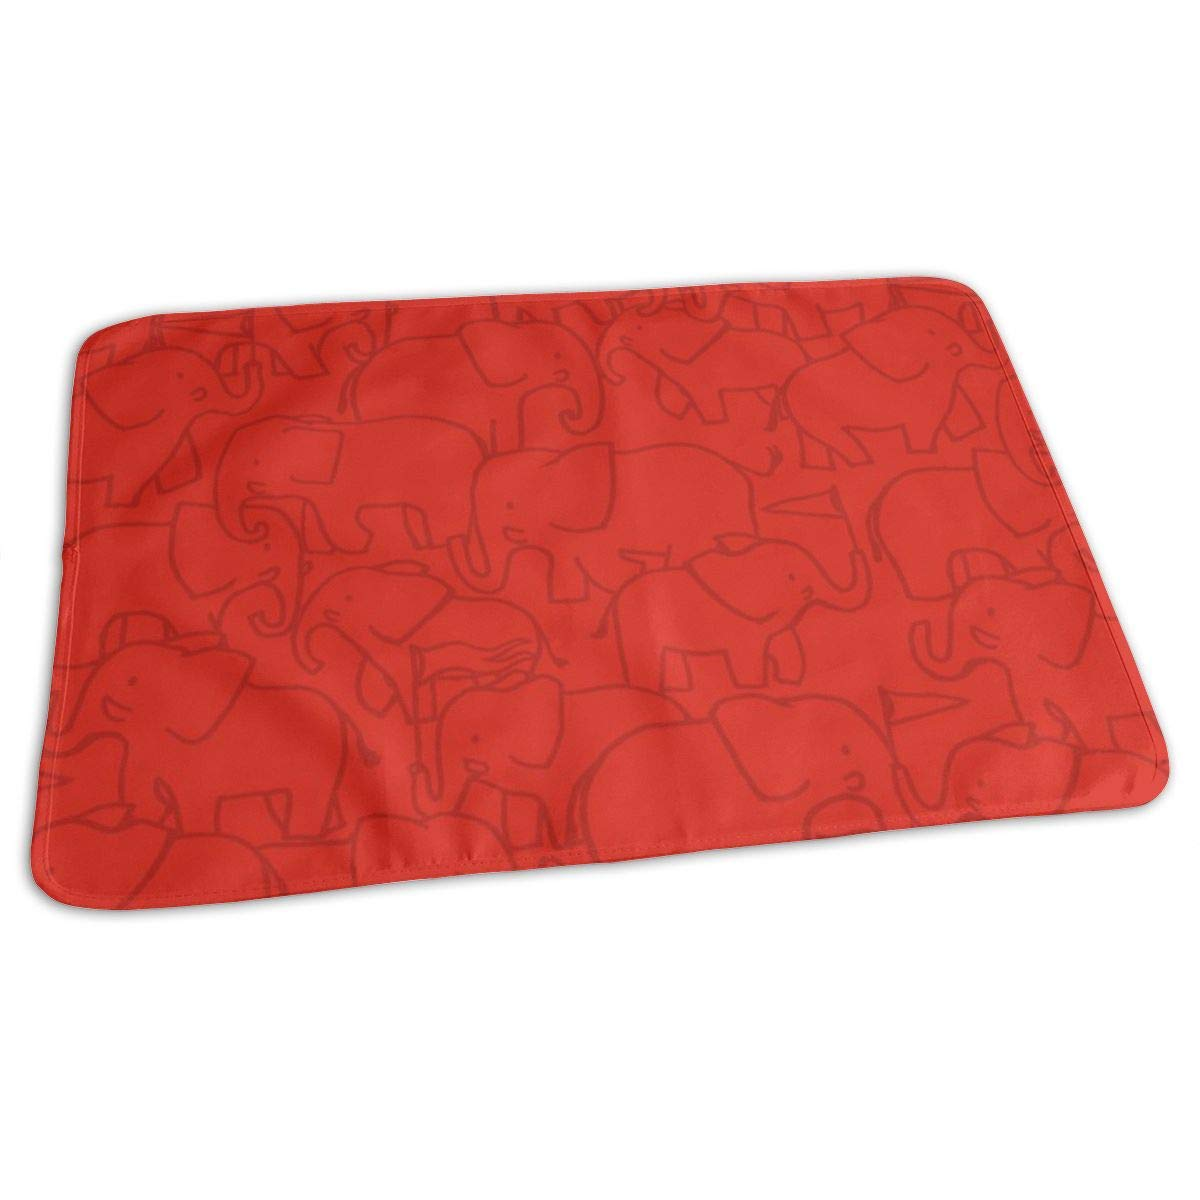 Red Hugo Elephant Baby Portable Reusable Changing Pad Mat 19.7x27.5 inch